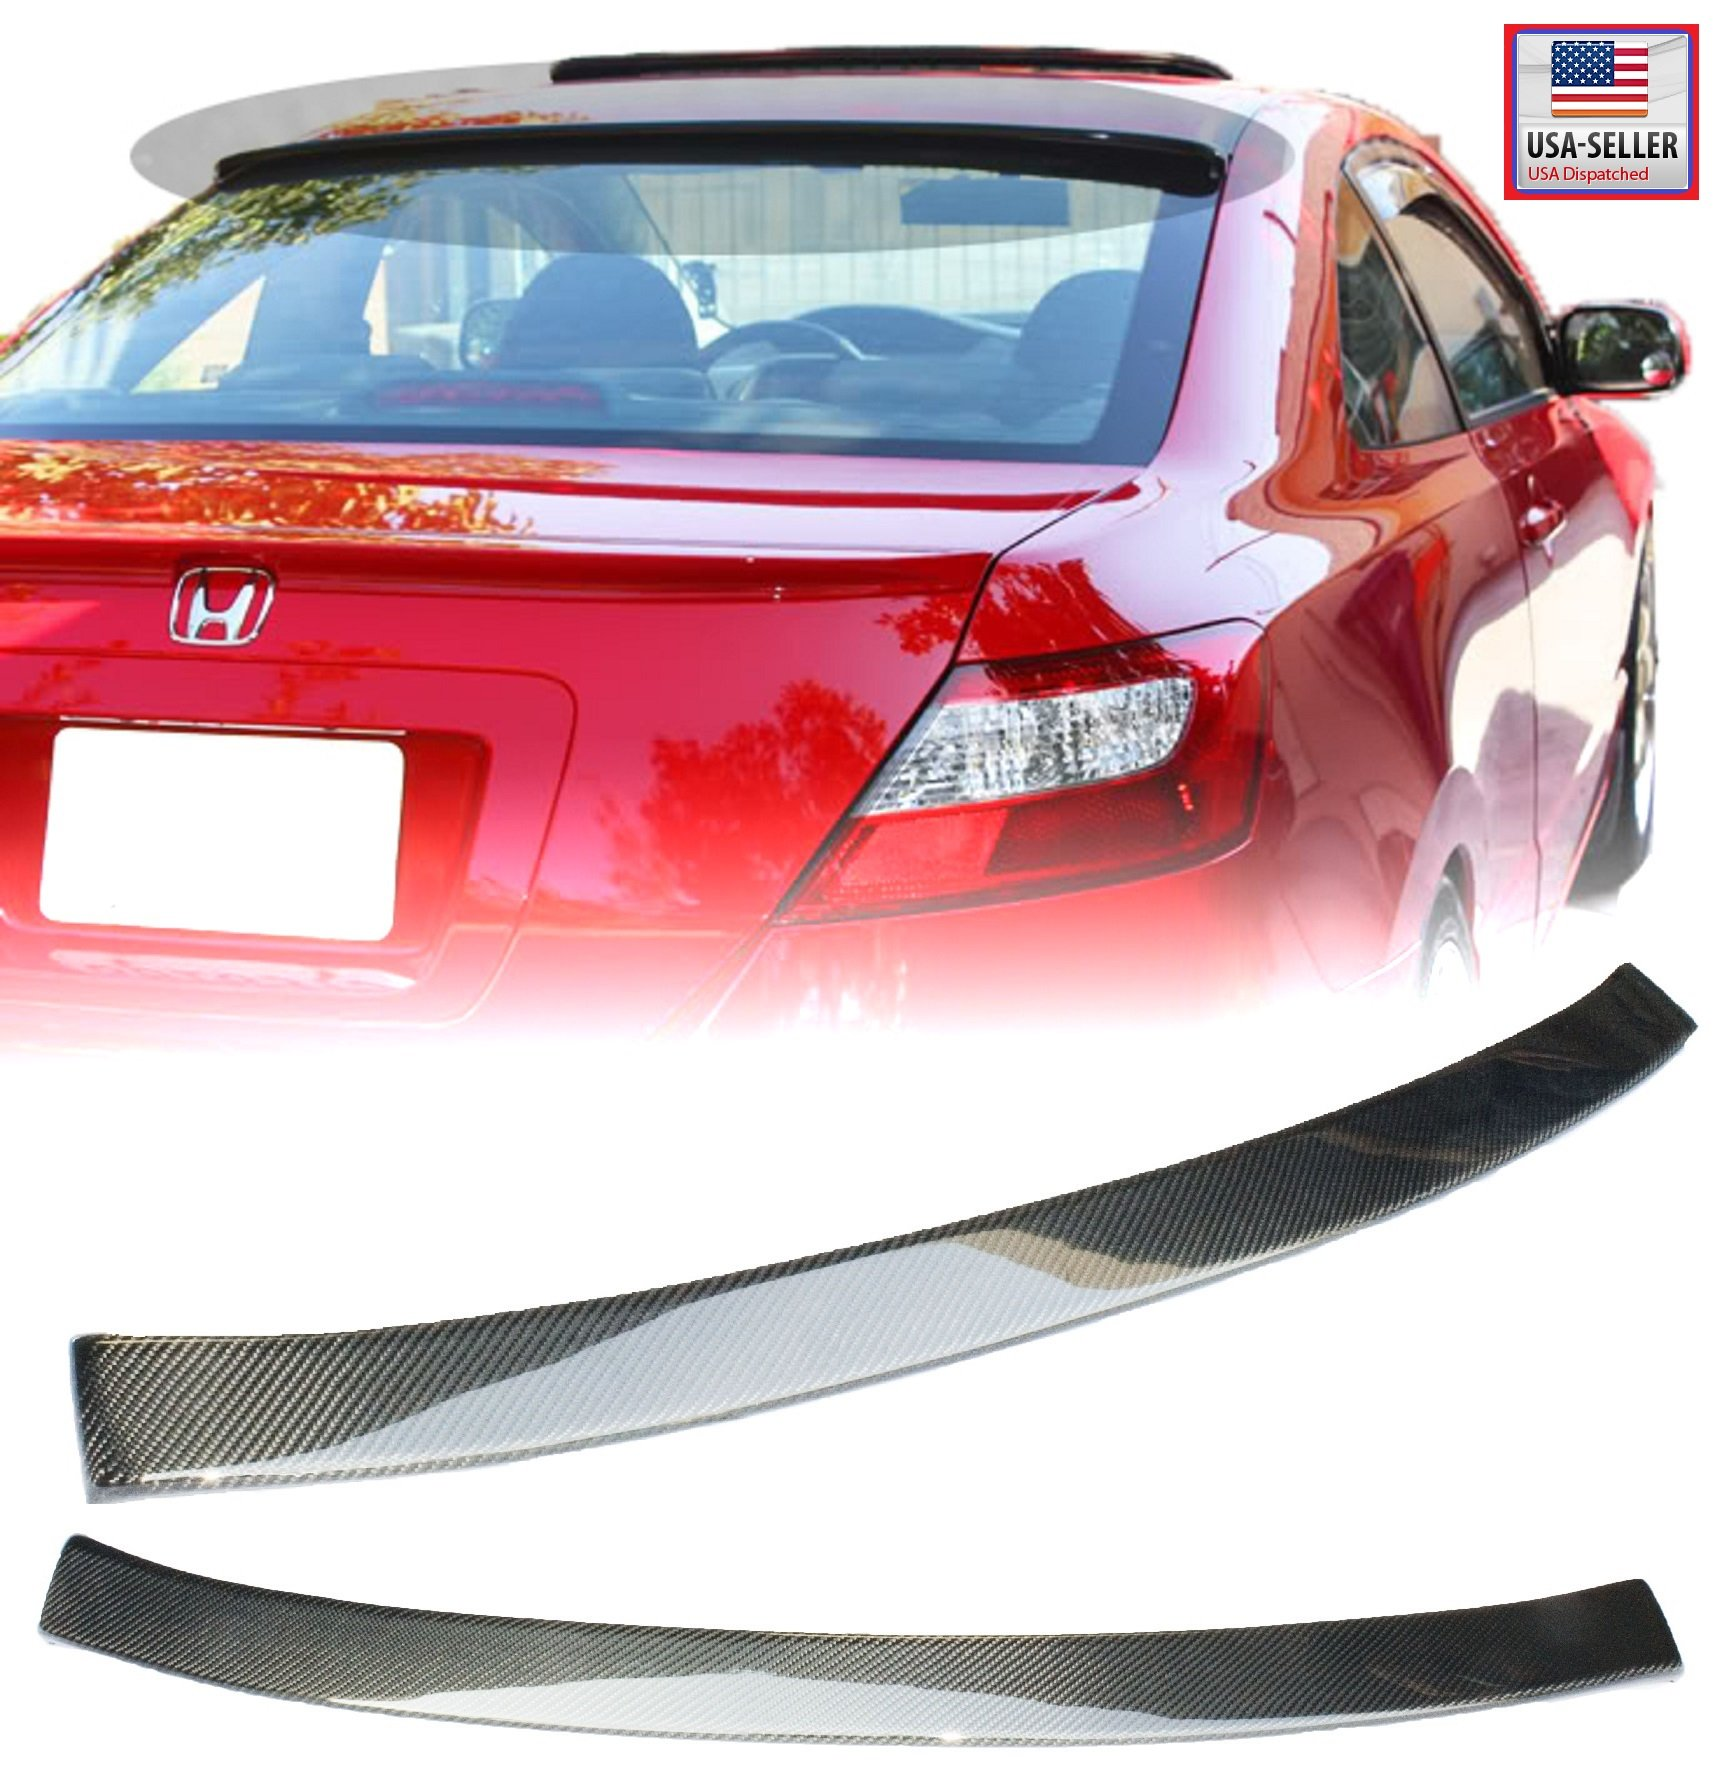 06-11 Honda Civic 2 Door Coupe Carbon Fiber Rear Roof Visor Spoiler Wing 2006 2007 2008 2009 2010 2011